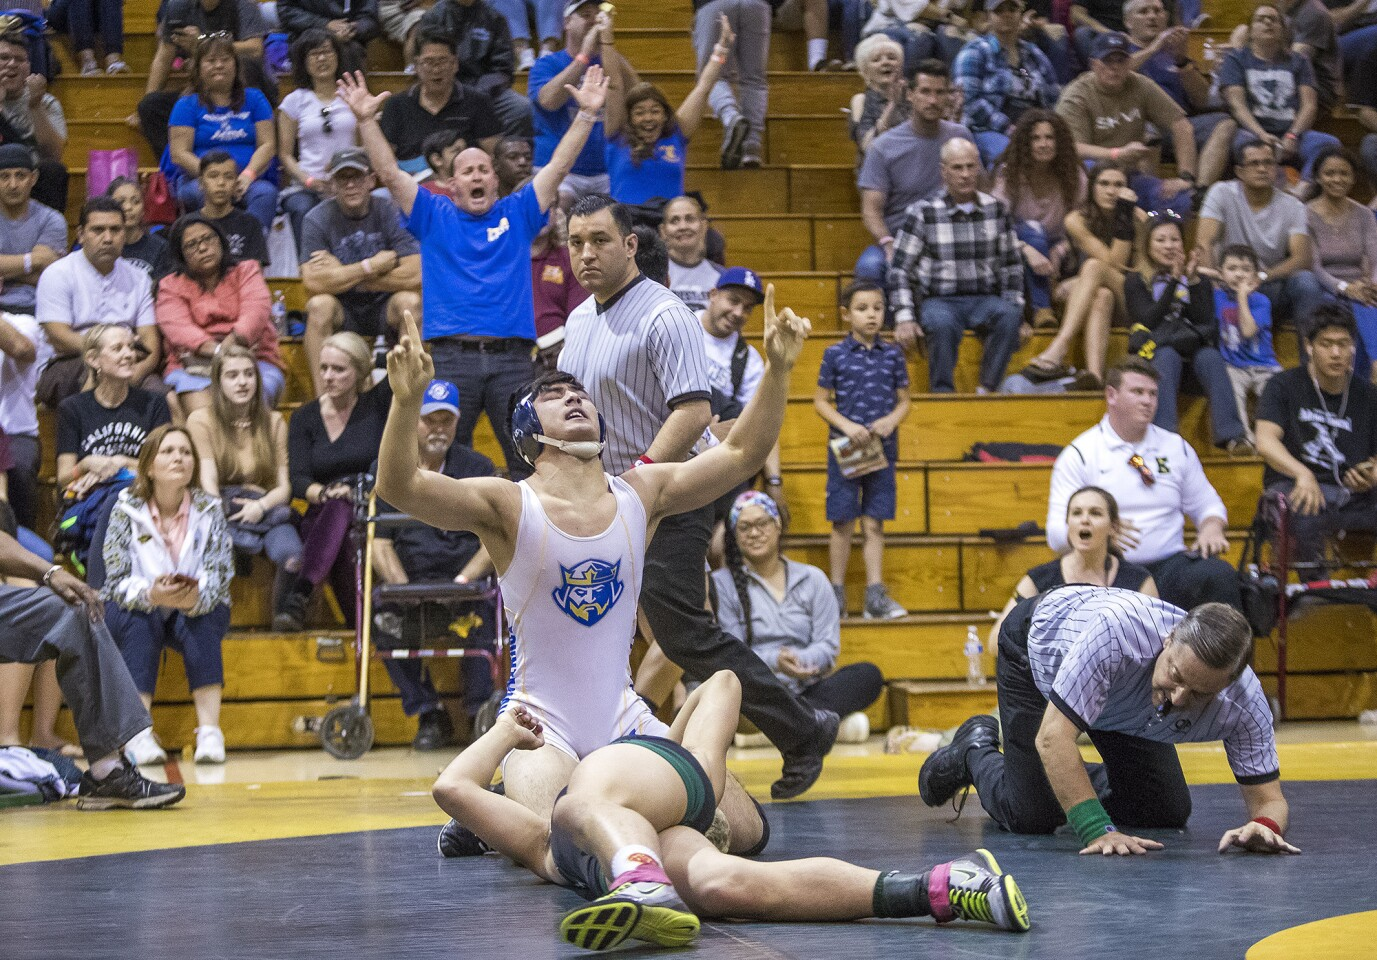 CIF Southern Section Southern Division Wrestling Championships